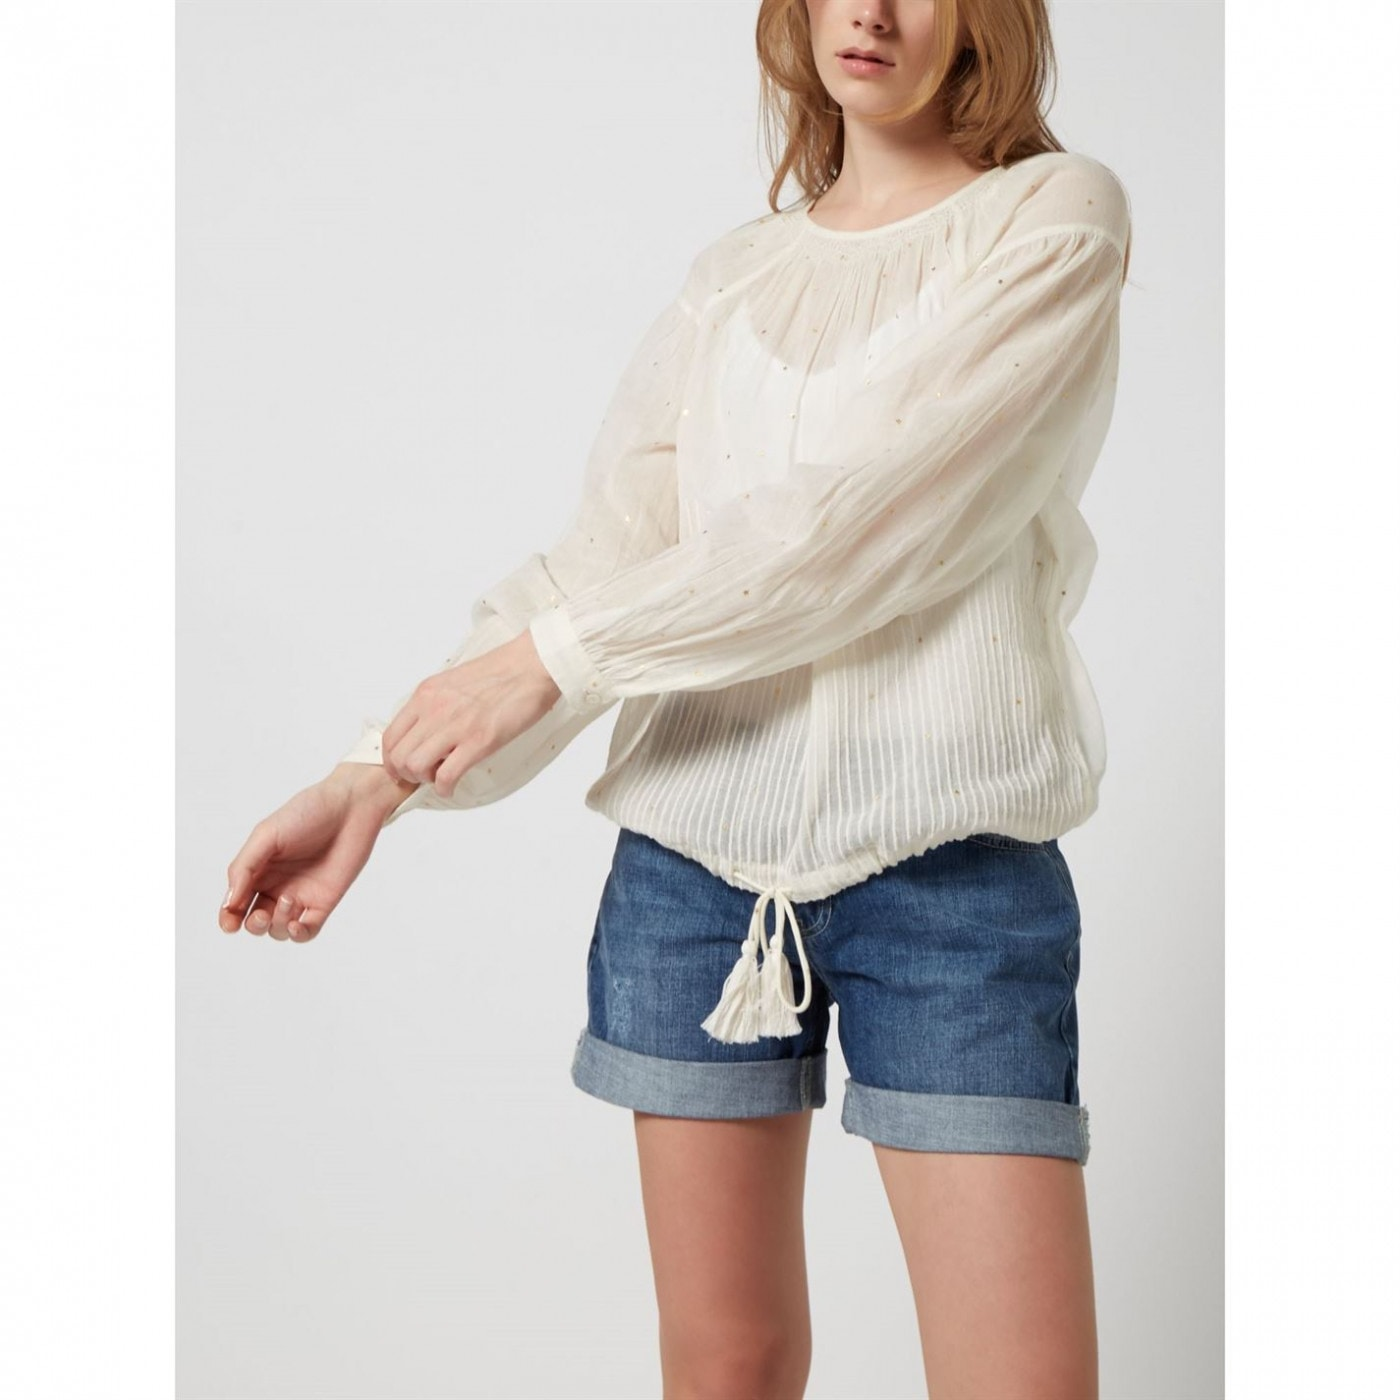 Woven Tops Star Blouse